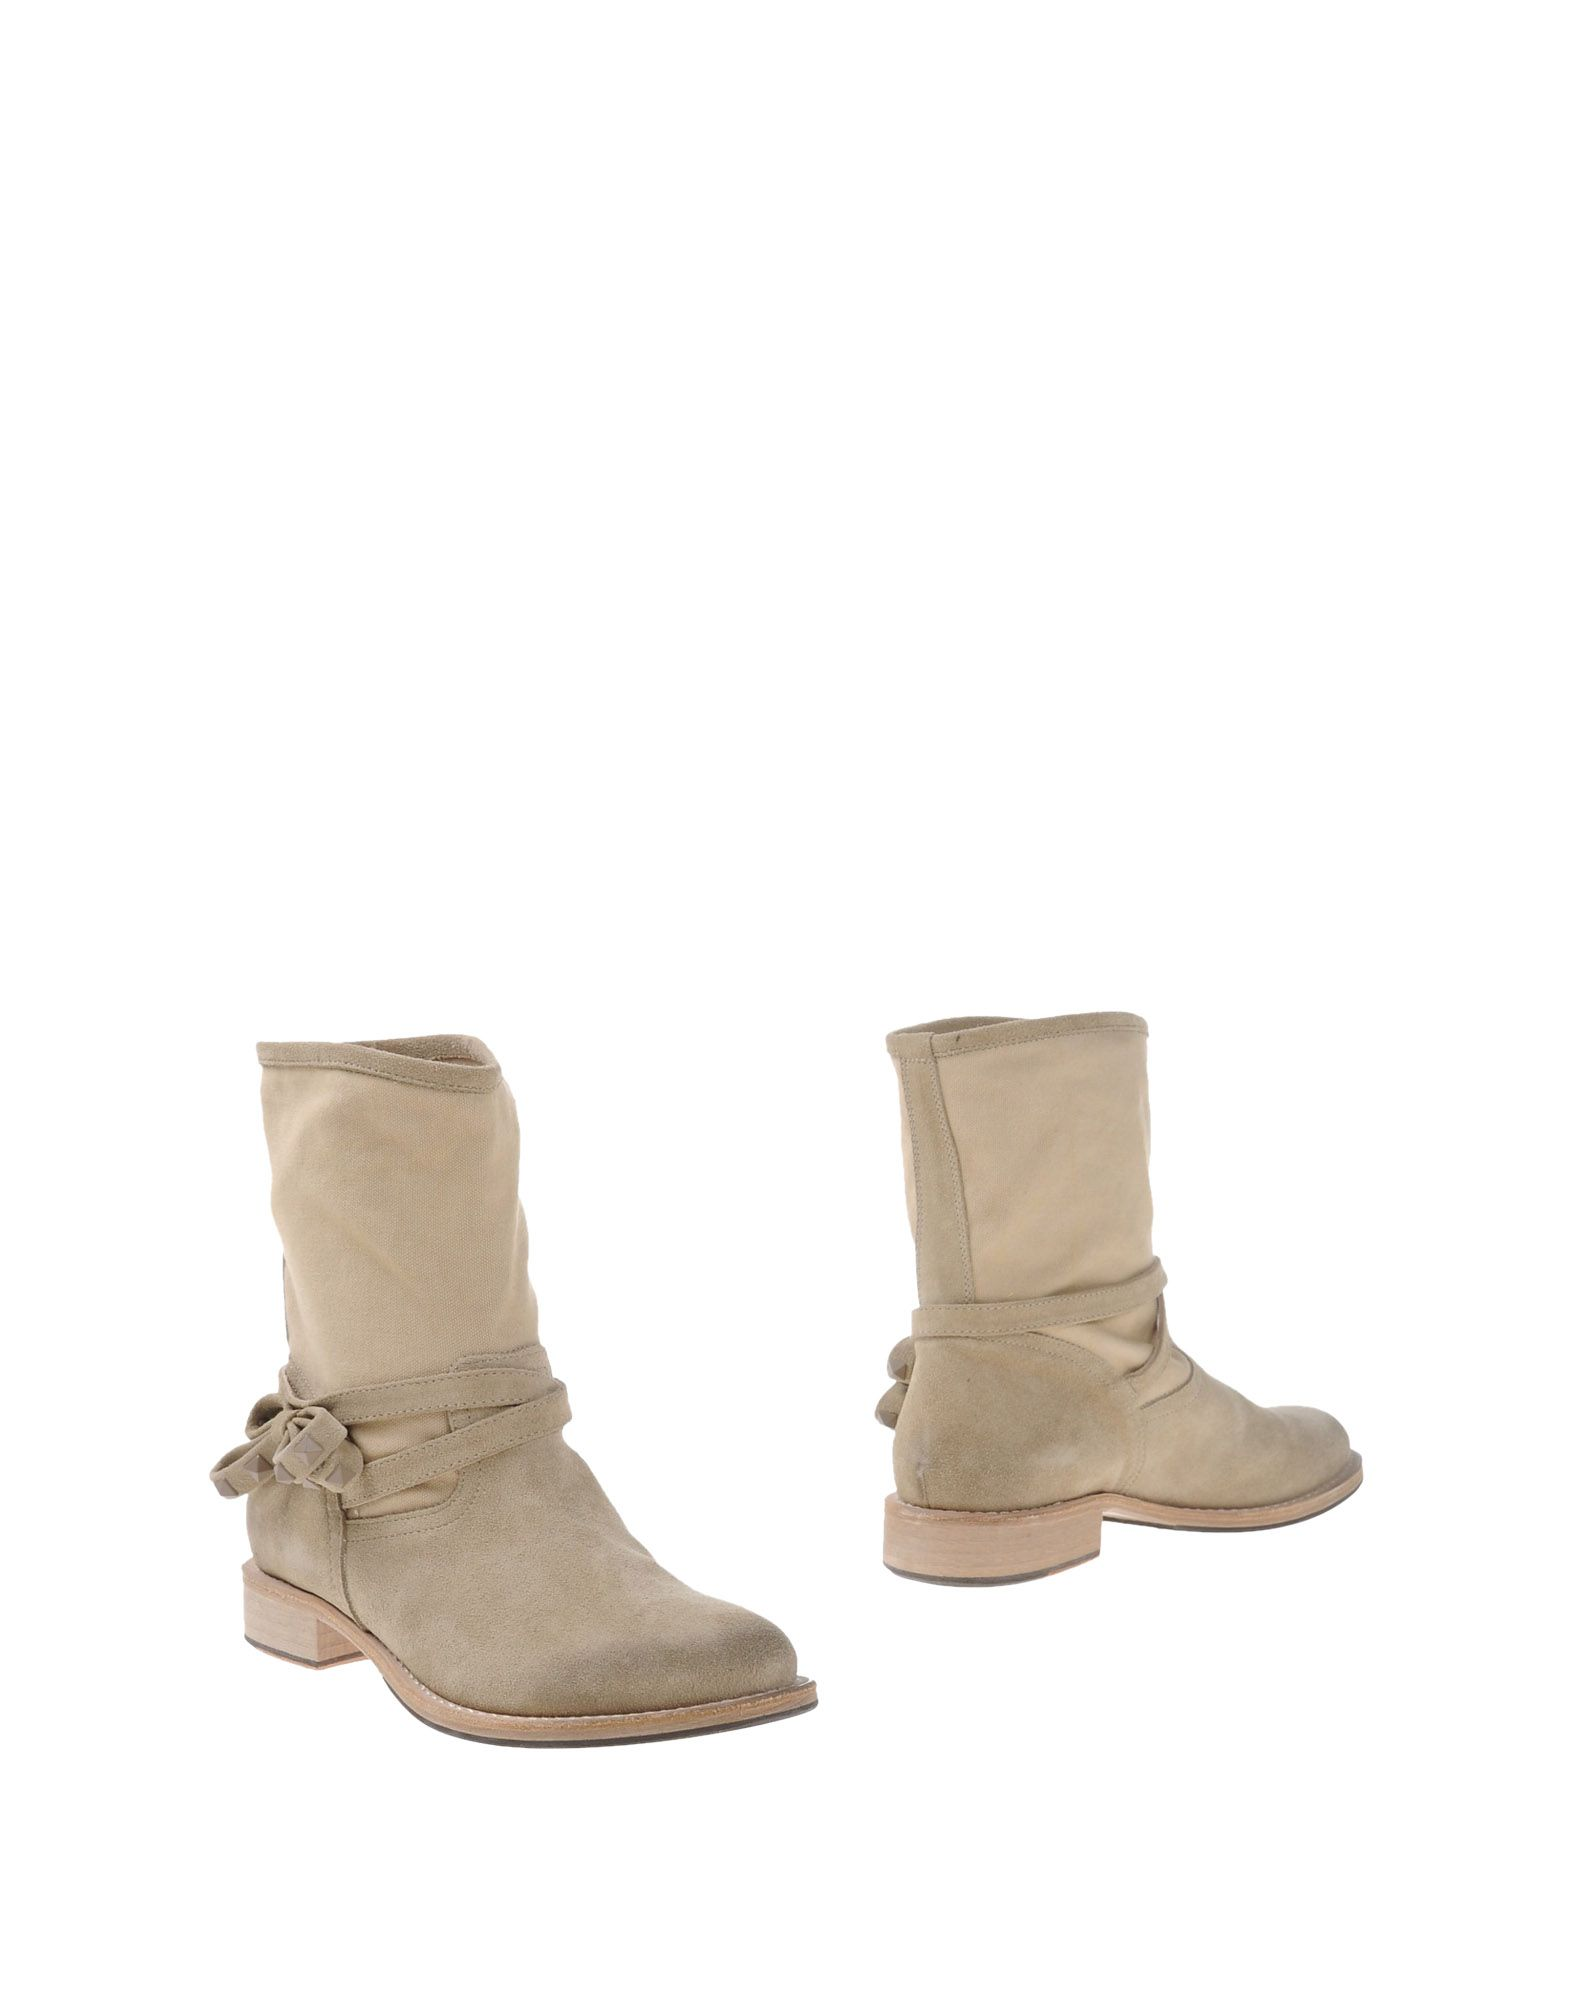 Scee By Twin-Set Ankle Boot - Women Scee online By Twin-Set Ankle Boots online Scee on  Australia - 11027421VT 835bcb